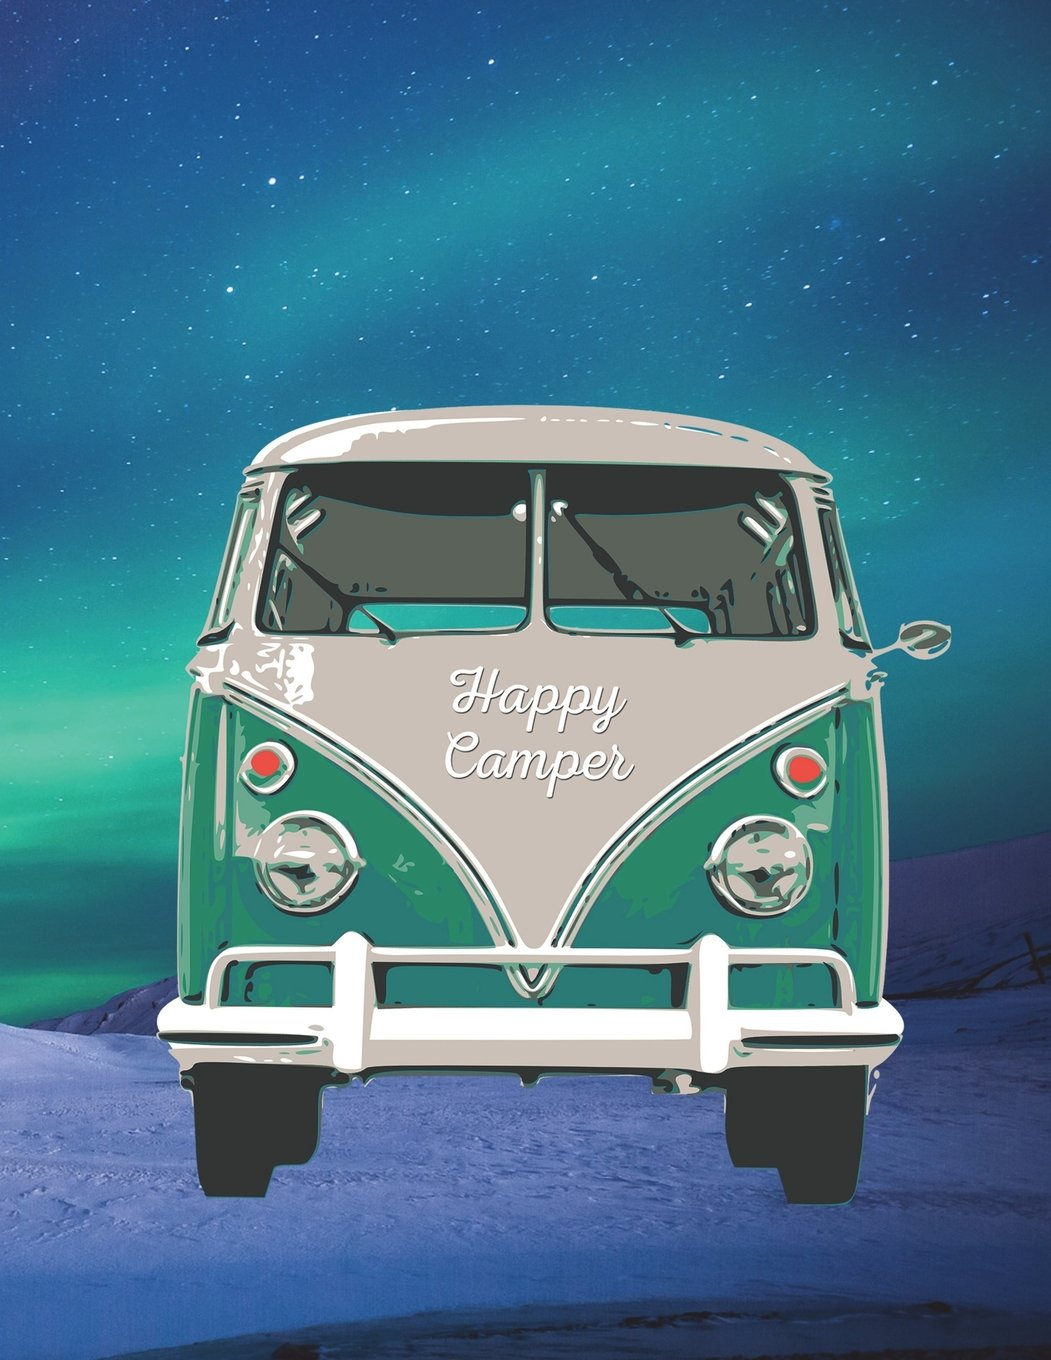 Download Happy Camper: 8.5 x 11 Fun Journal College Ruled Paper Notebook, Appreciation Gift, Quote Book or Diary ~ Unique Inspirational Gift for Independent ... Authors, Friends, Teachers or Artists pdf epub